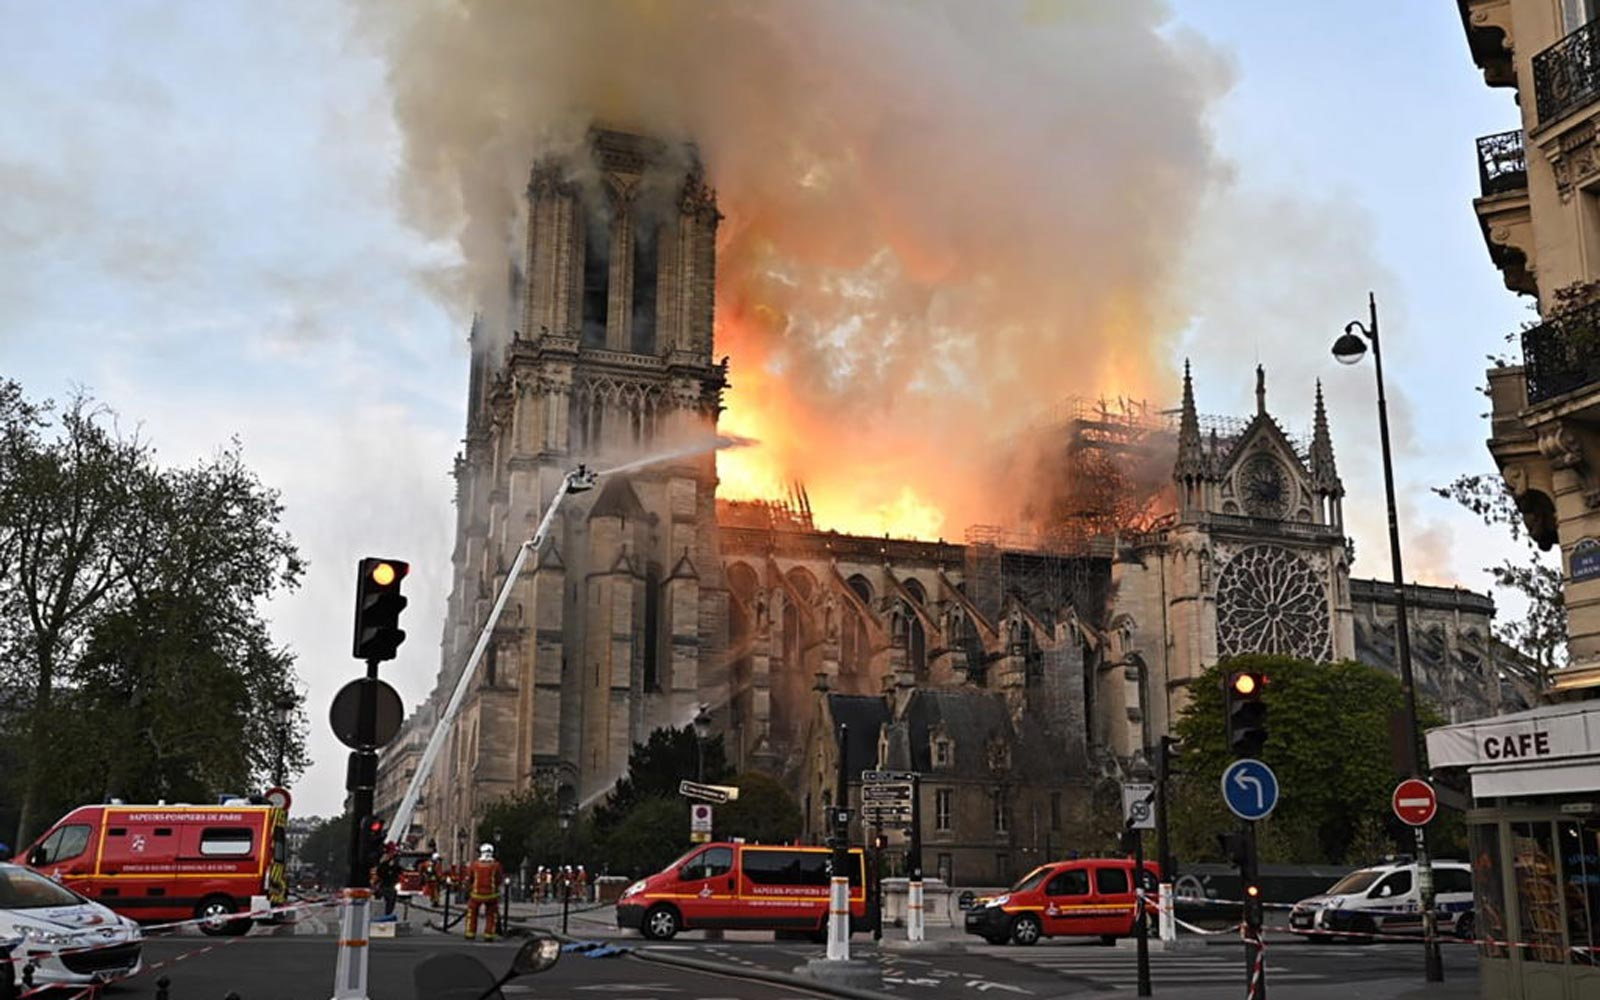 Notre Dame Relics Sent to the Louvre As Millions Are Pledged to Rebuild the Cathedral